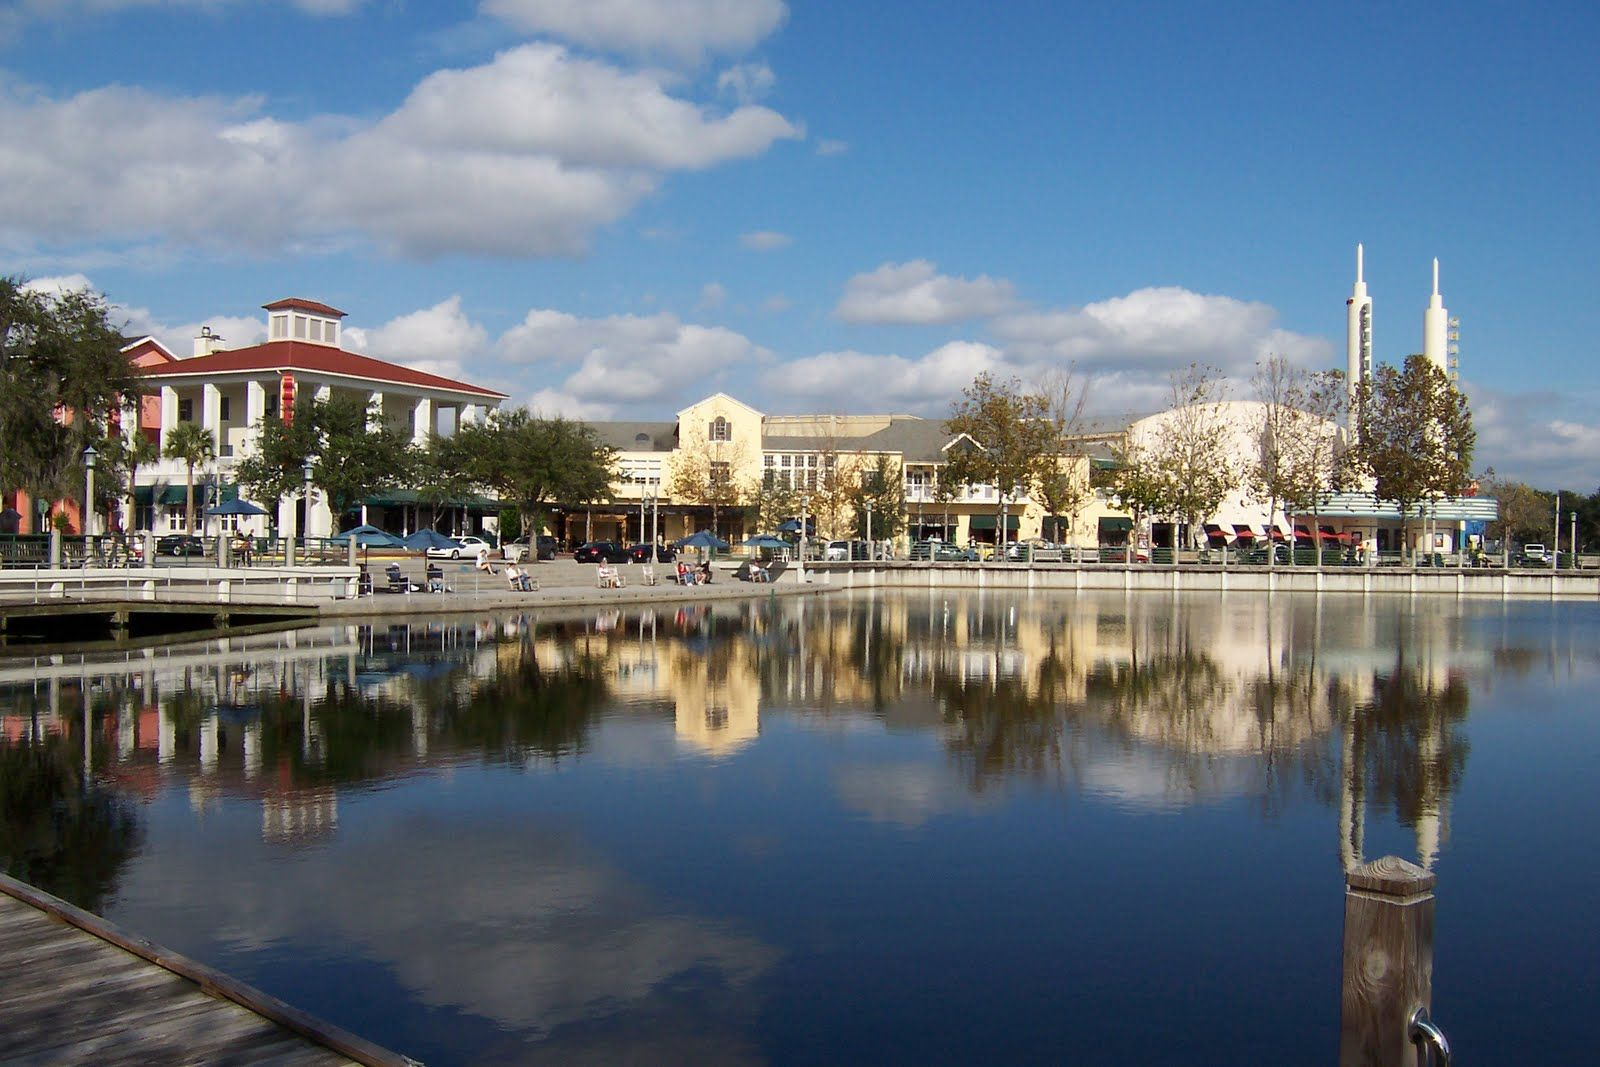 home disney town of celebration - Google Search | Homes ...